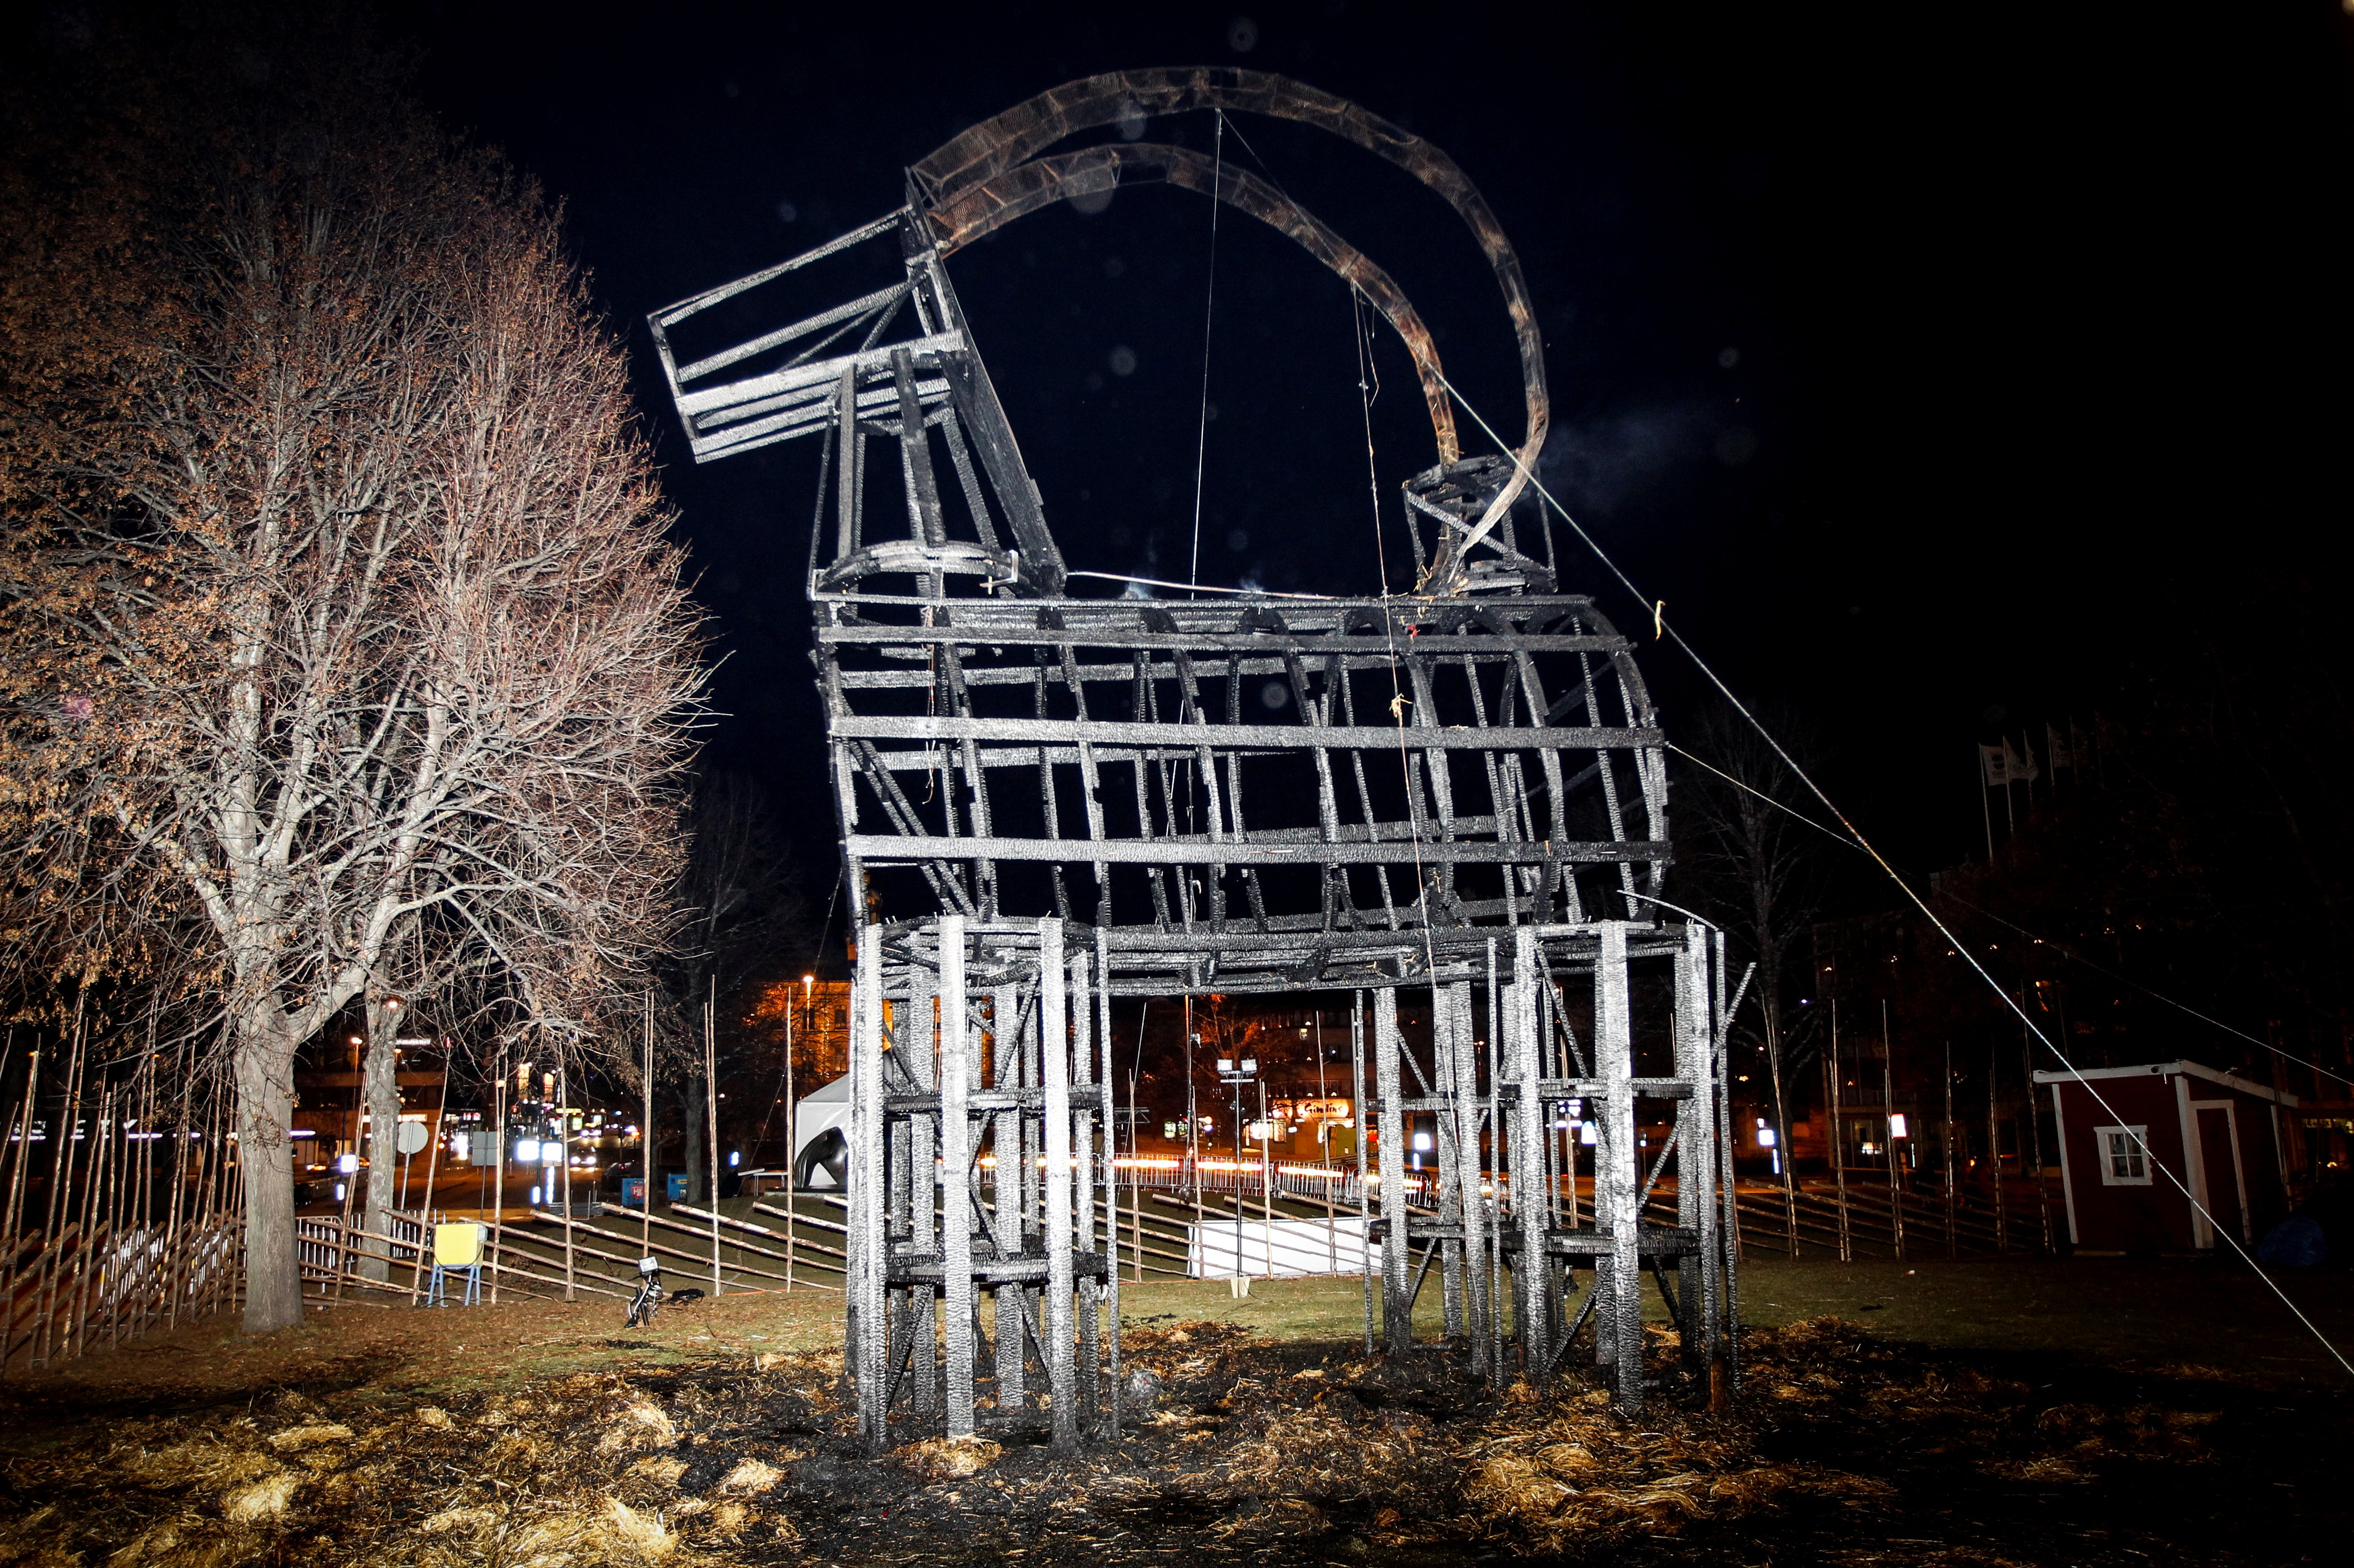 A picture taken on November 27, 2016 shows the traditional Swedish Christmas goat in Gavle, after it was burned down late in the evening, just a few hours after its inauguration to celebrate its 50-year anniversary.                     The first goat in Gavle was erected in 1966. The goat has been burned down many times over the years. / AFP / TT NEWS AGENCY / Pernilla WAHLMAN / Sweden OUT        (Photo credit should read PERNILLA WAHLMAN/AFP/Getty Images)